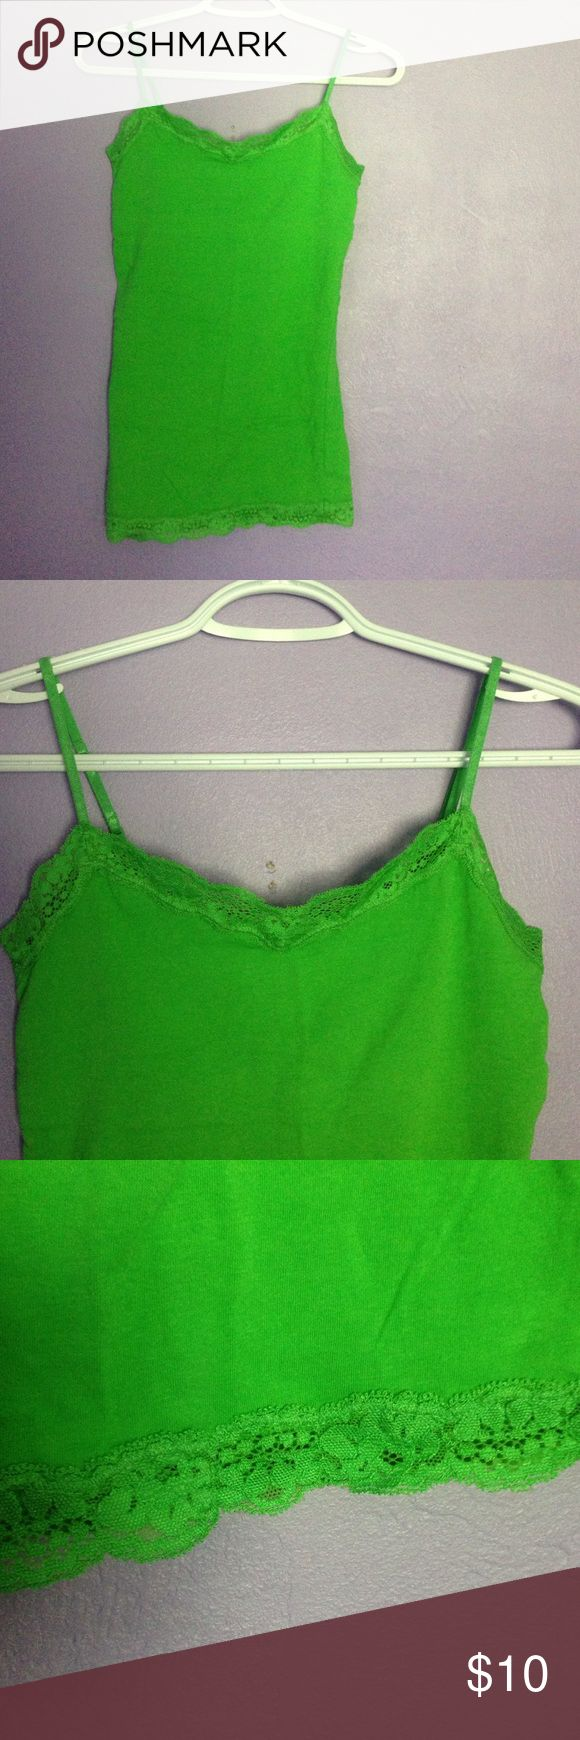 Lime Green Tank Top Lime Green Tank Top. Never worn, with lace trim on top and bottom. V-neck. aéropostale Tops Tank Tops